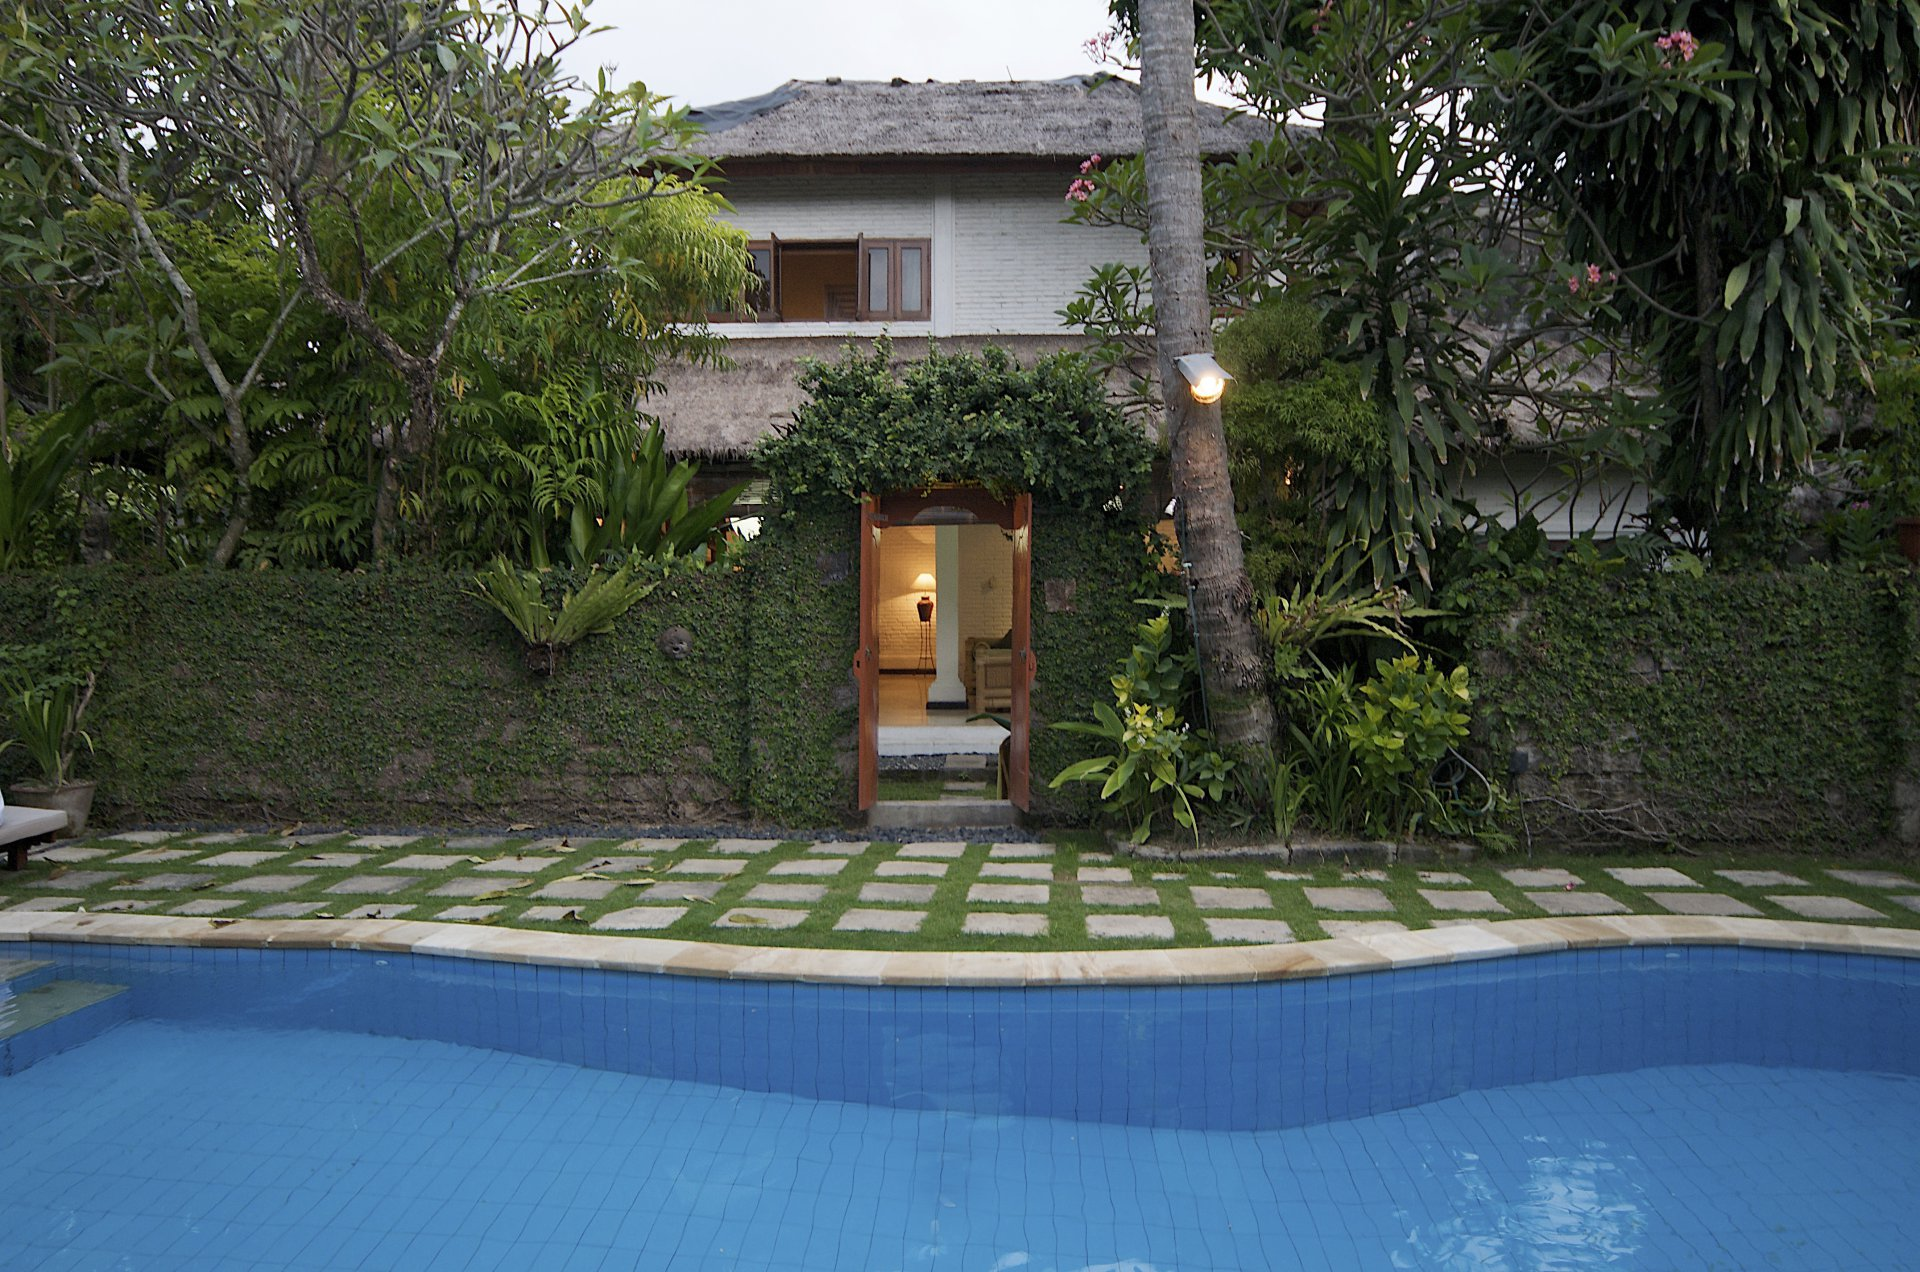 Robins-Place-Bali-Villa-3 Bedroom-11